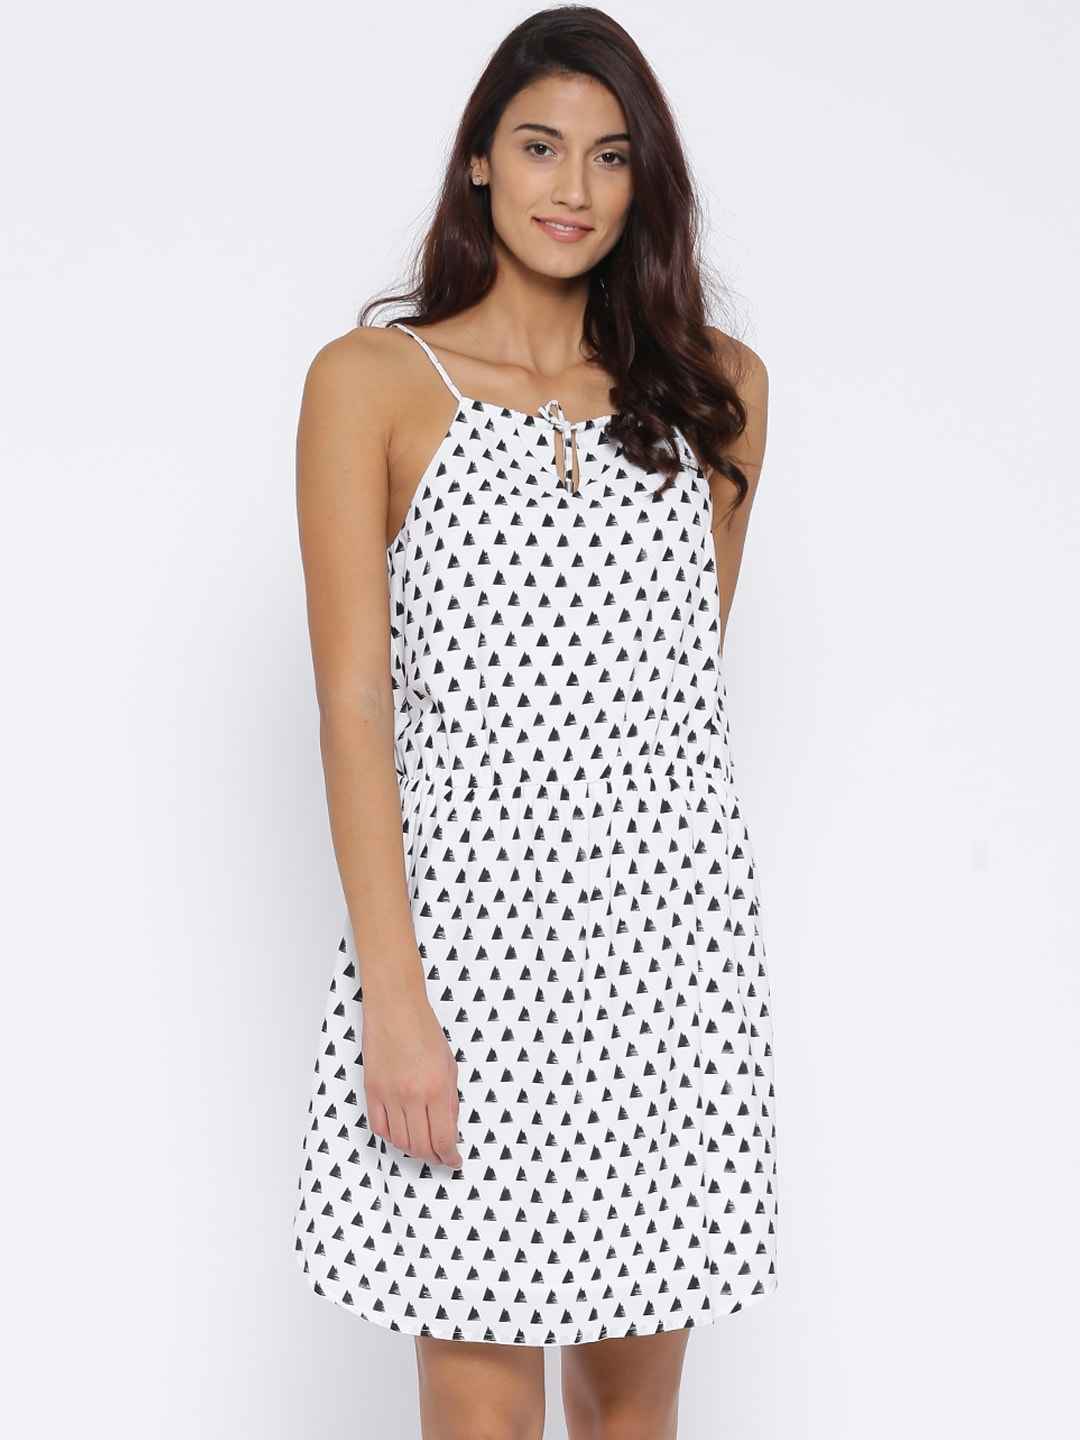 Allen Solly Woman Off-White Printed Fit & Flare Dress image